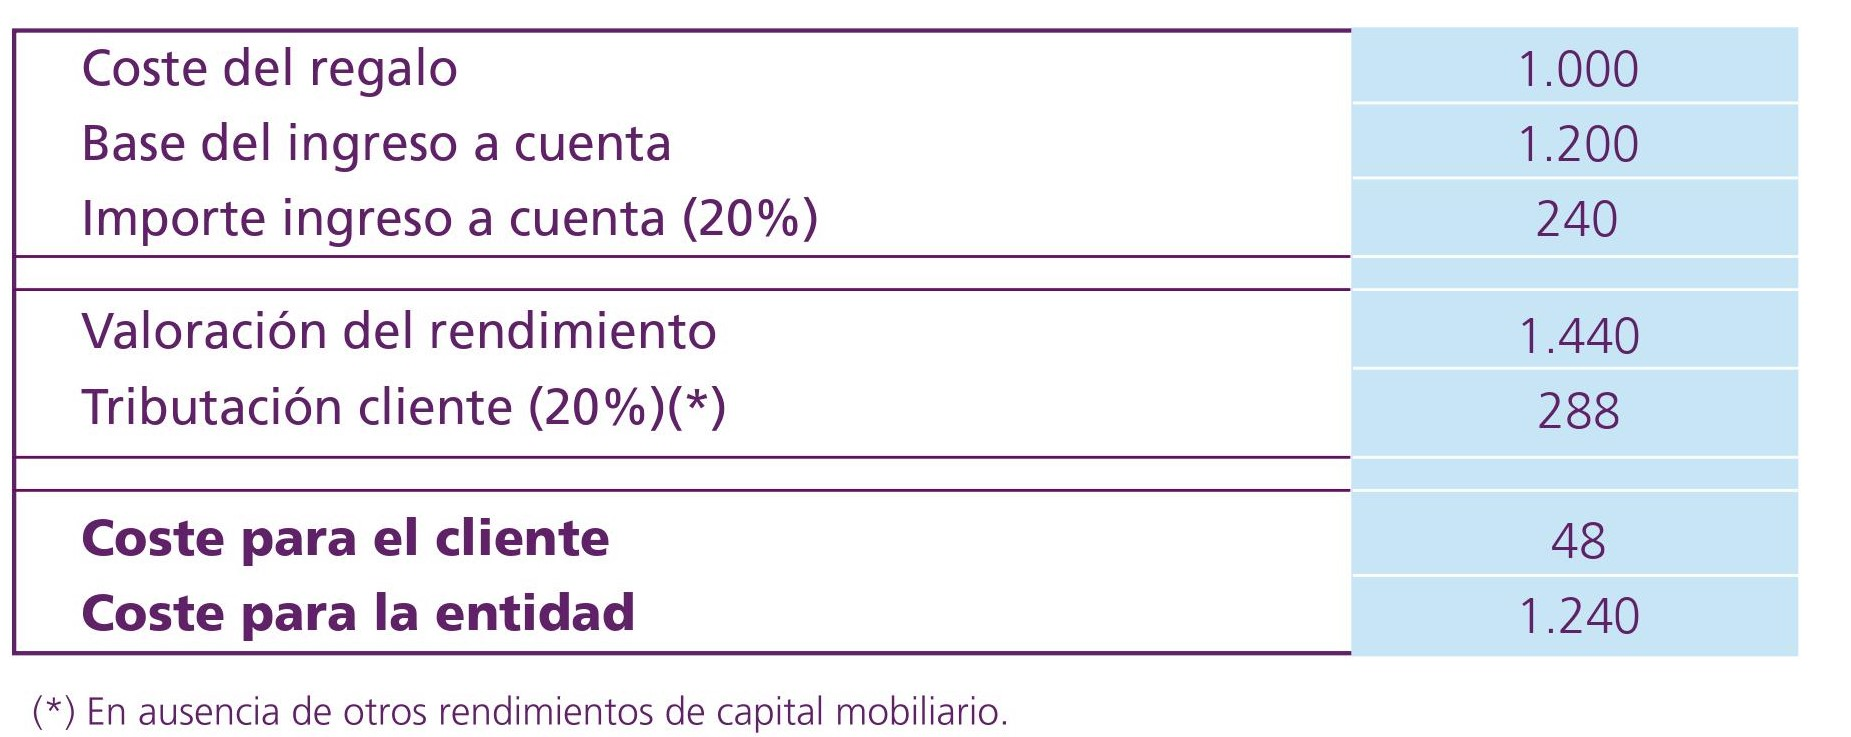 traspaso plan pensiones